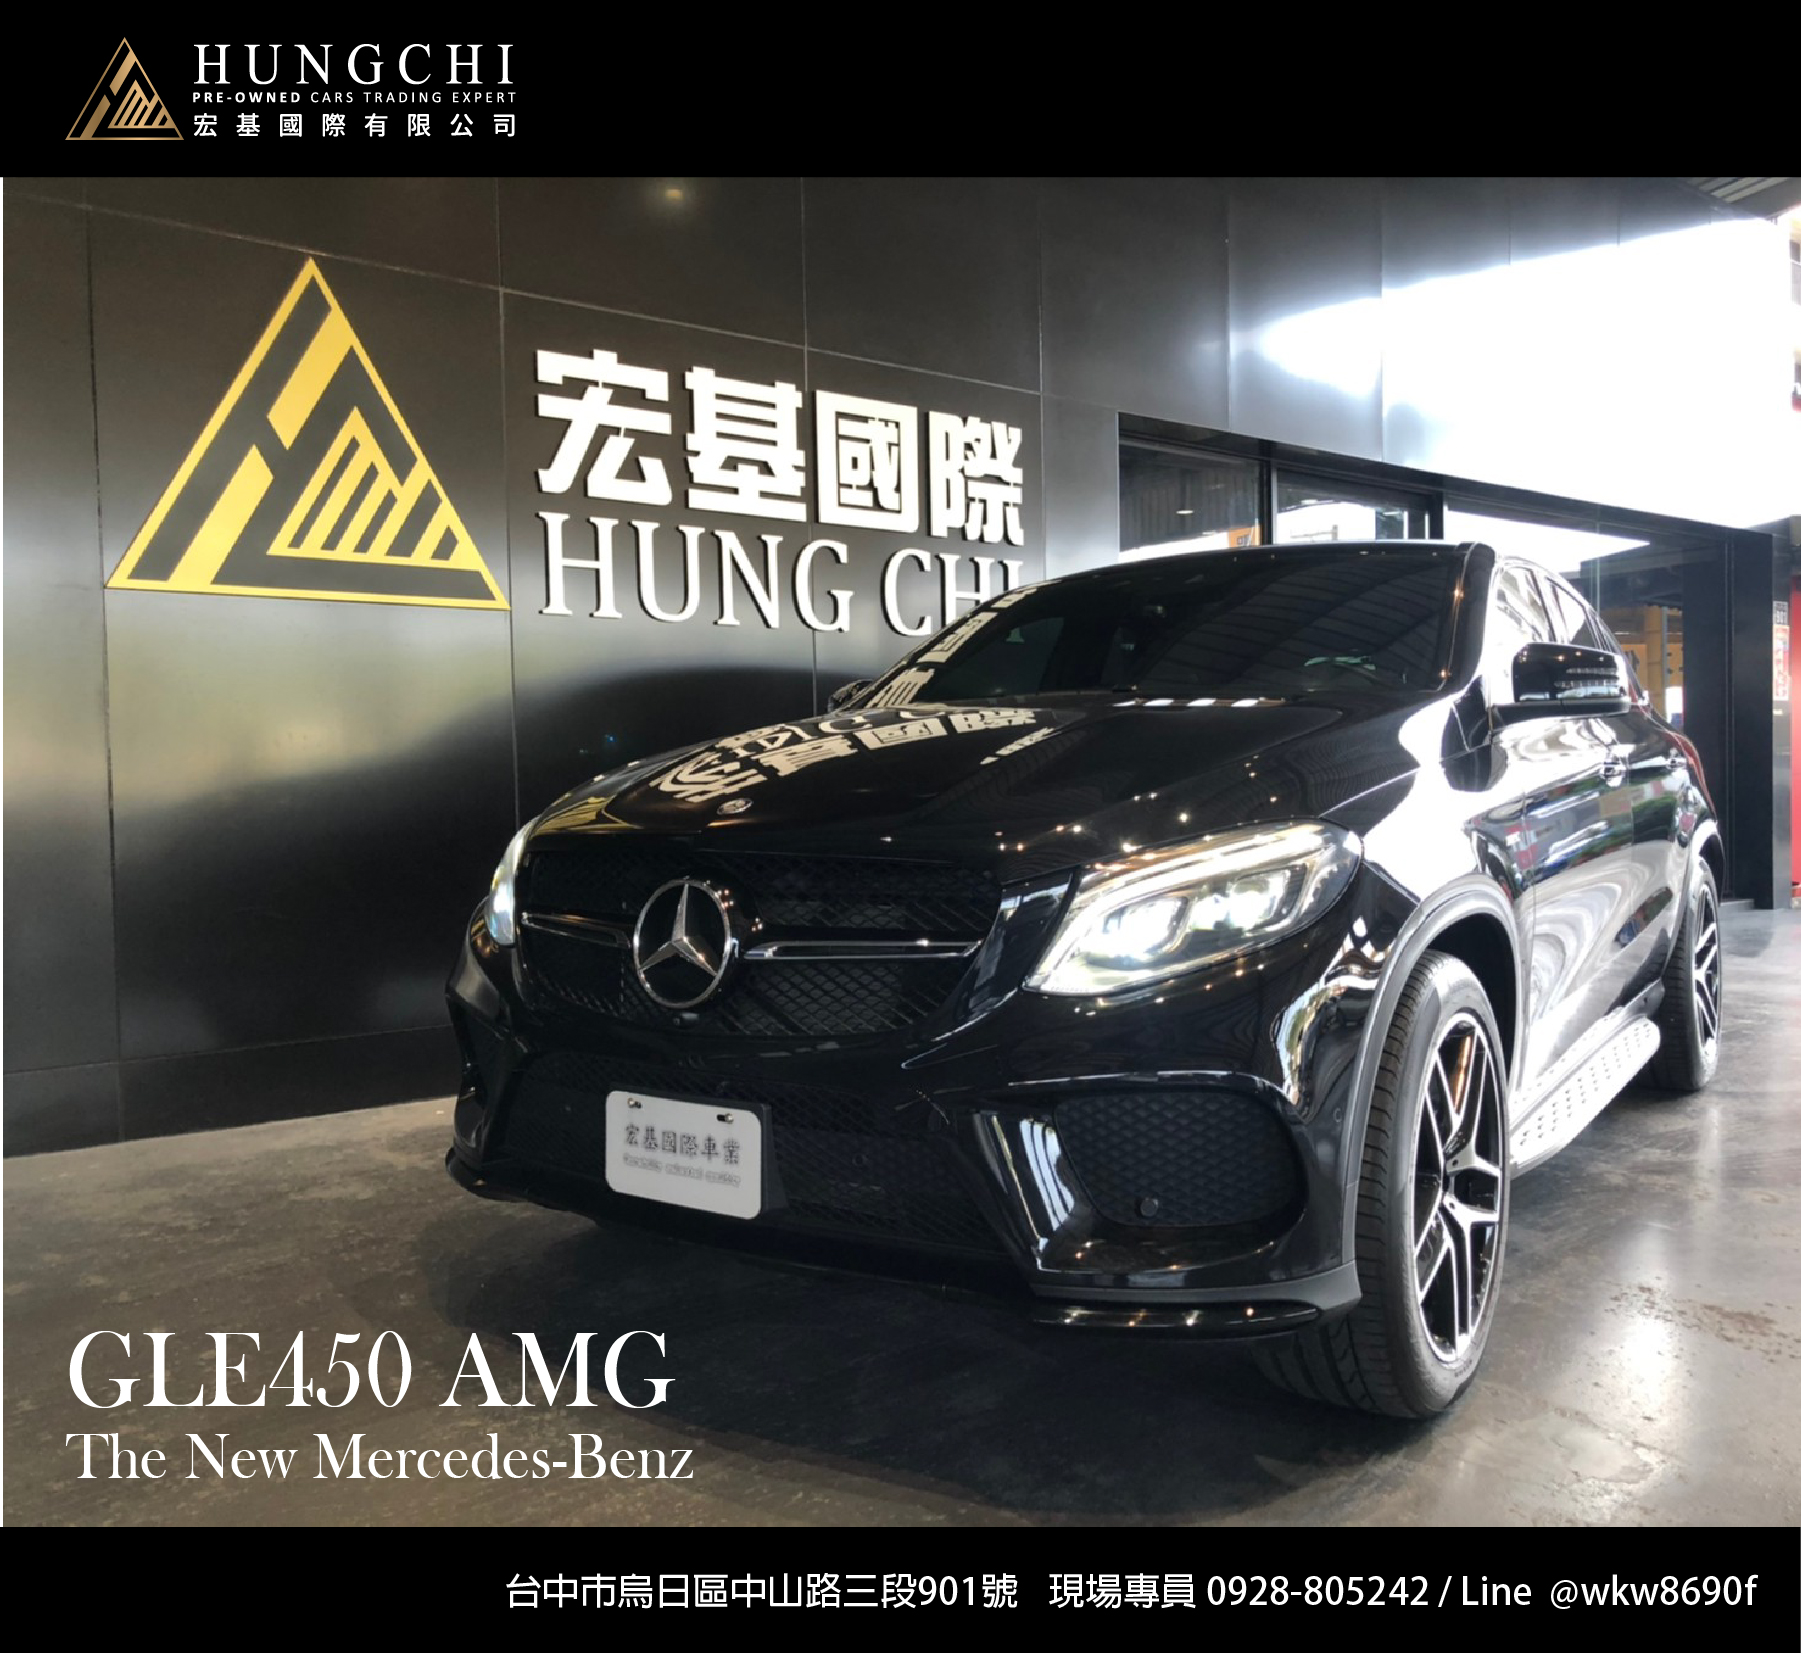 2016 總代理 M-Benz AMG GLE450 4matic